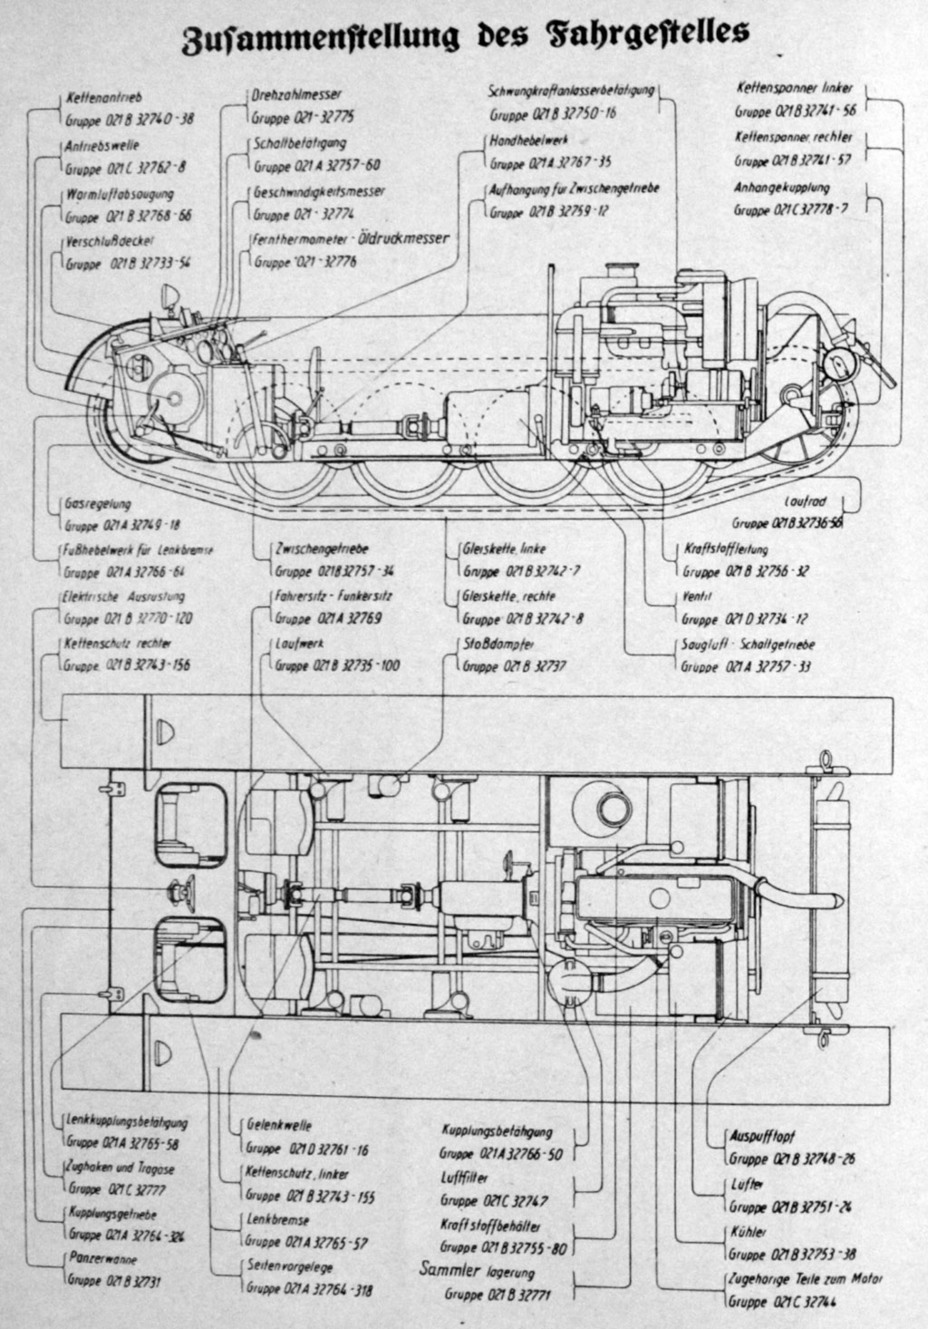 medium resolution of instead of a v shaped engine the vehicle indexed la s 138 used the 140 hp linear maybach hl 62 tr engine the same as on the pzii ausf c